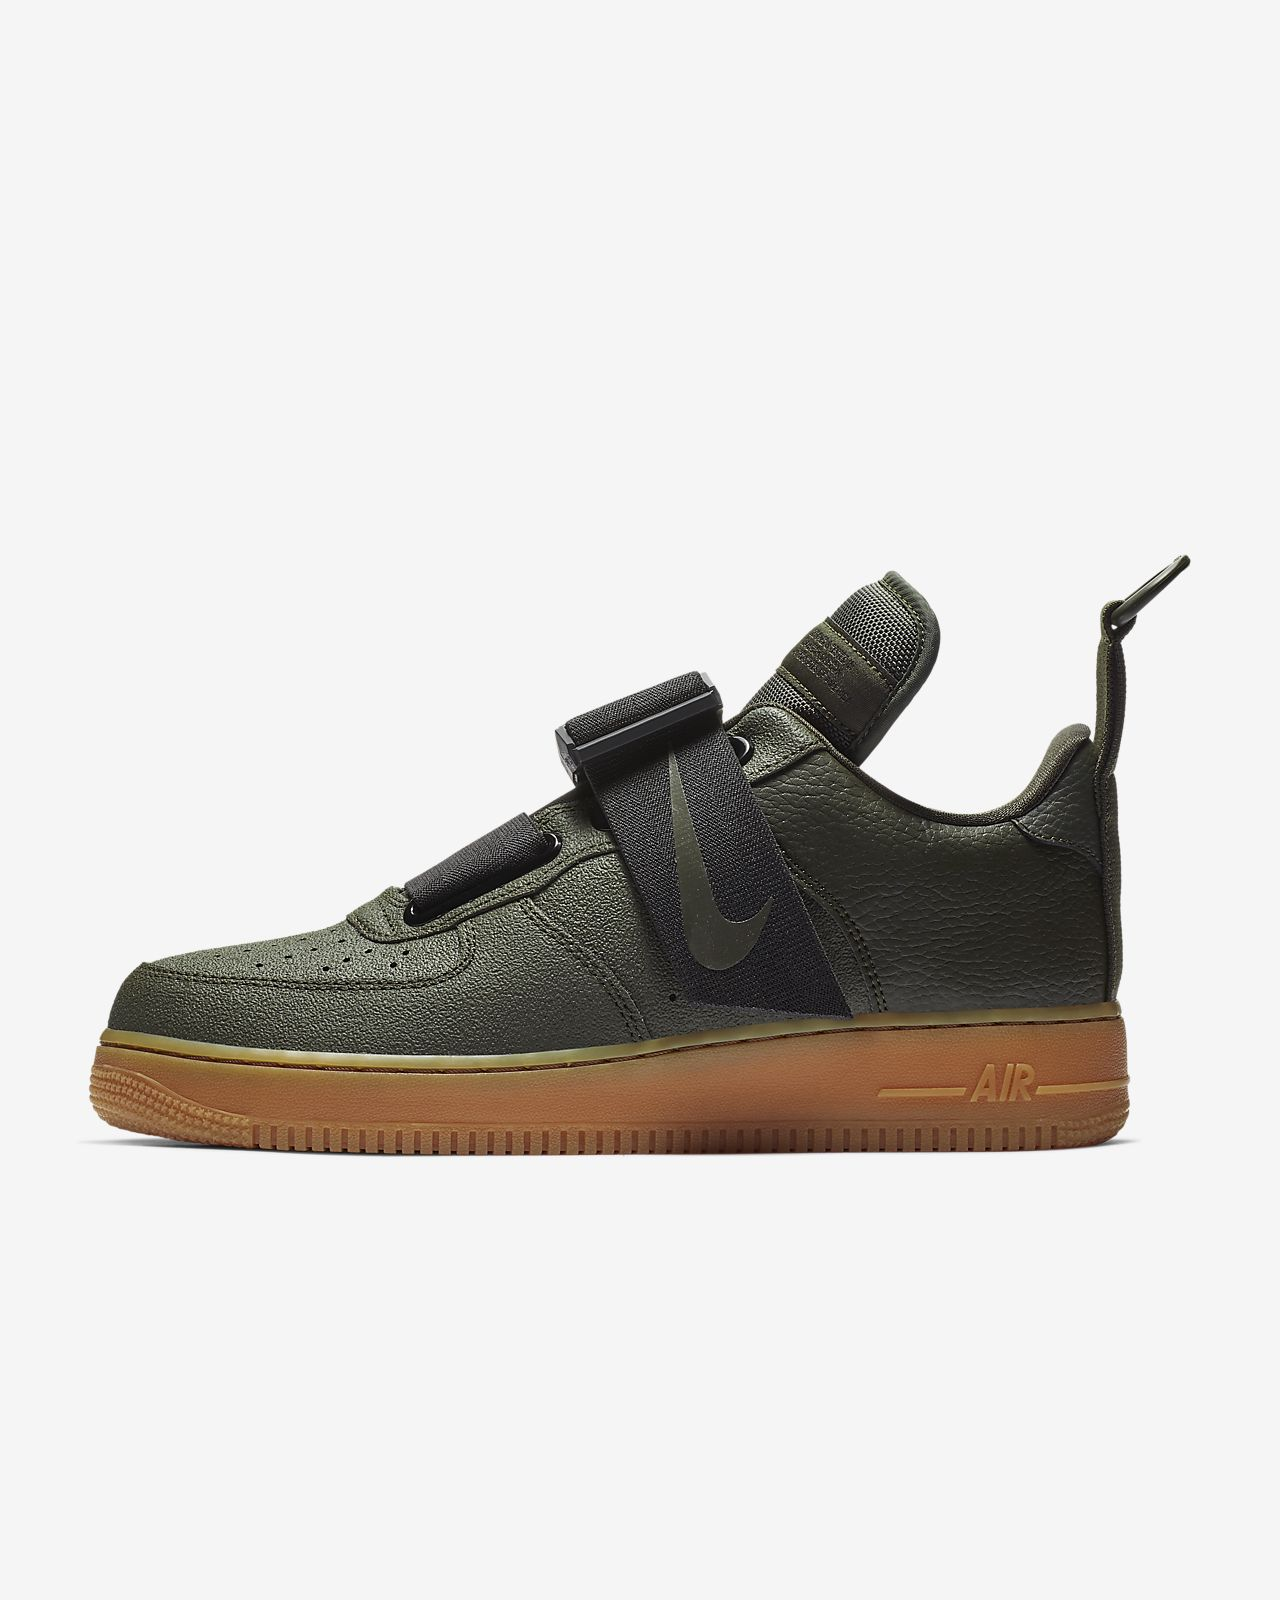 the best attitude 847a8 5a030 Low Resolution Nike Air Force 1 Utility Zapatillas - Hombre Nike Air Force 1  Utility Zapatillas - Hombre